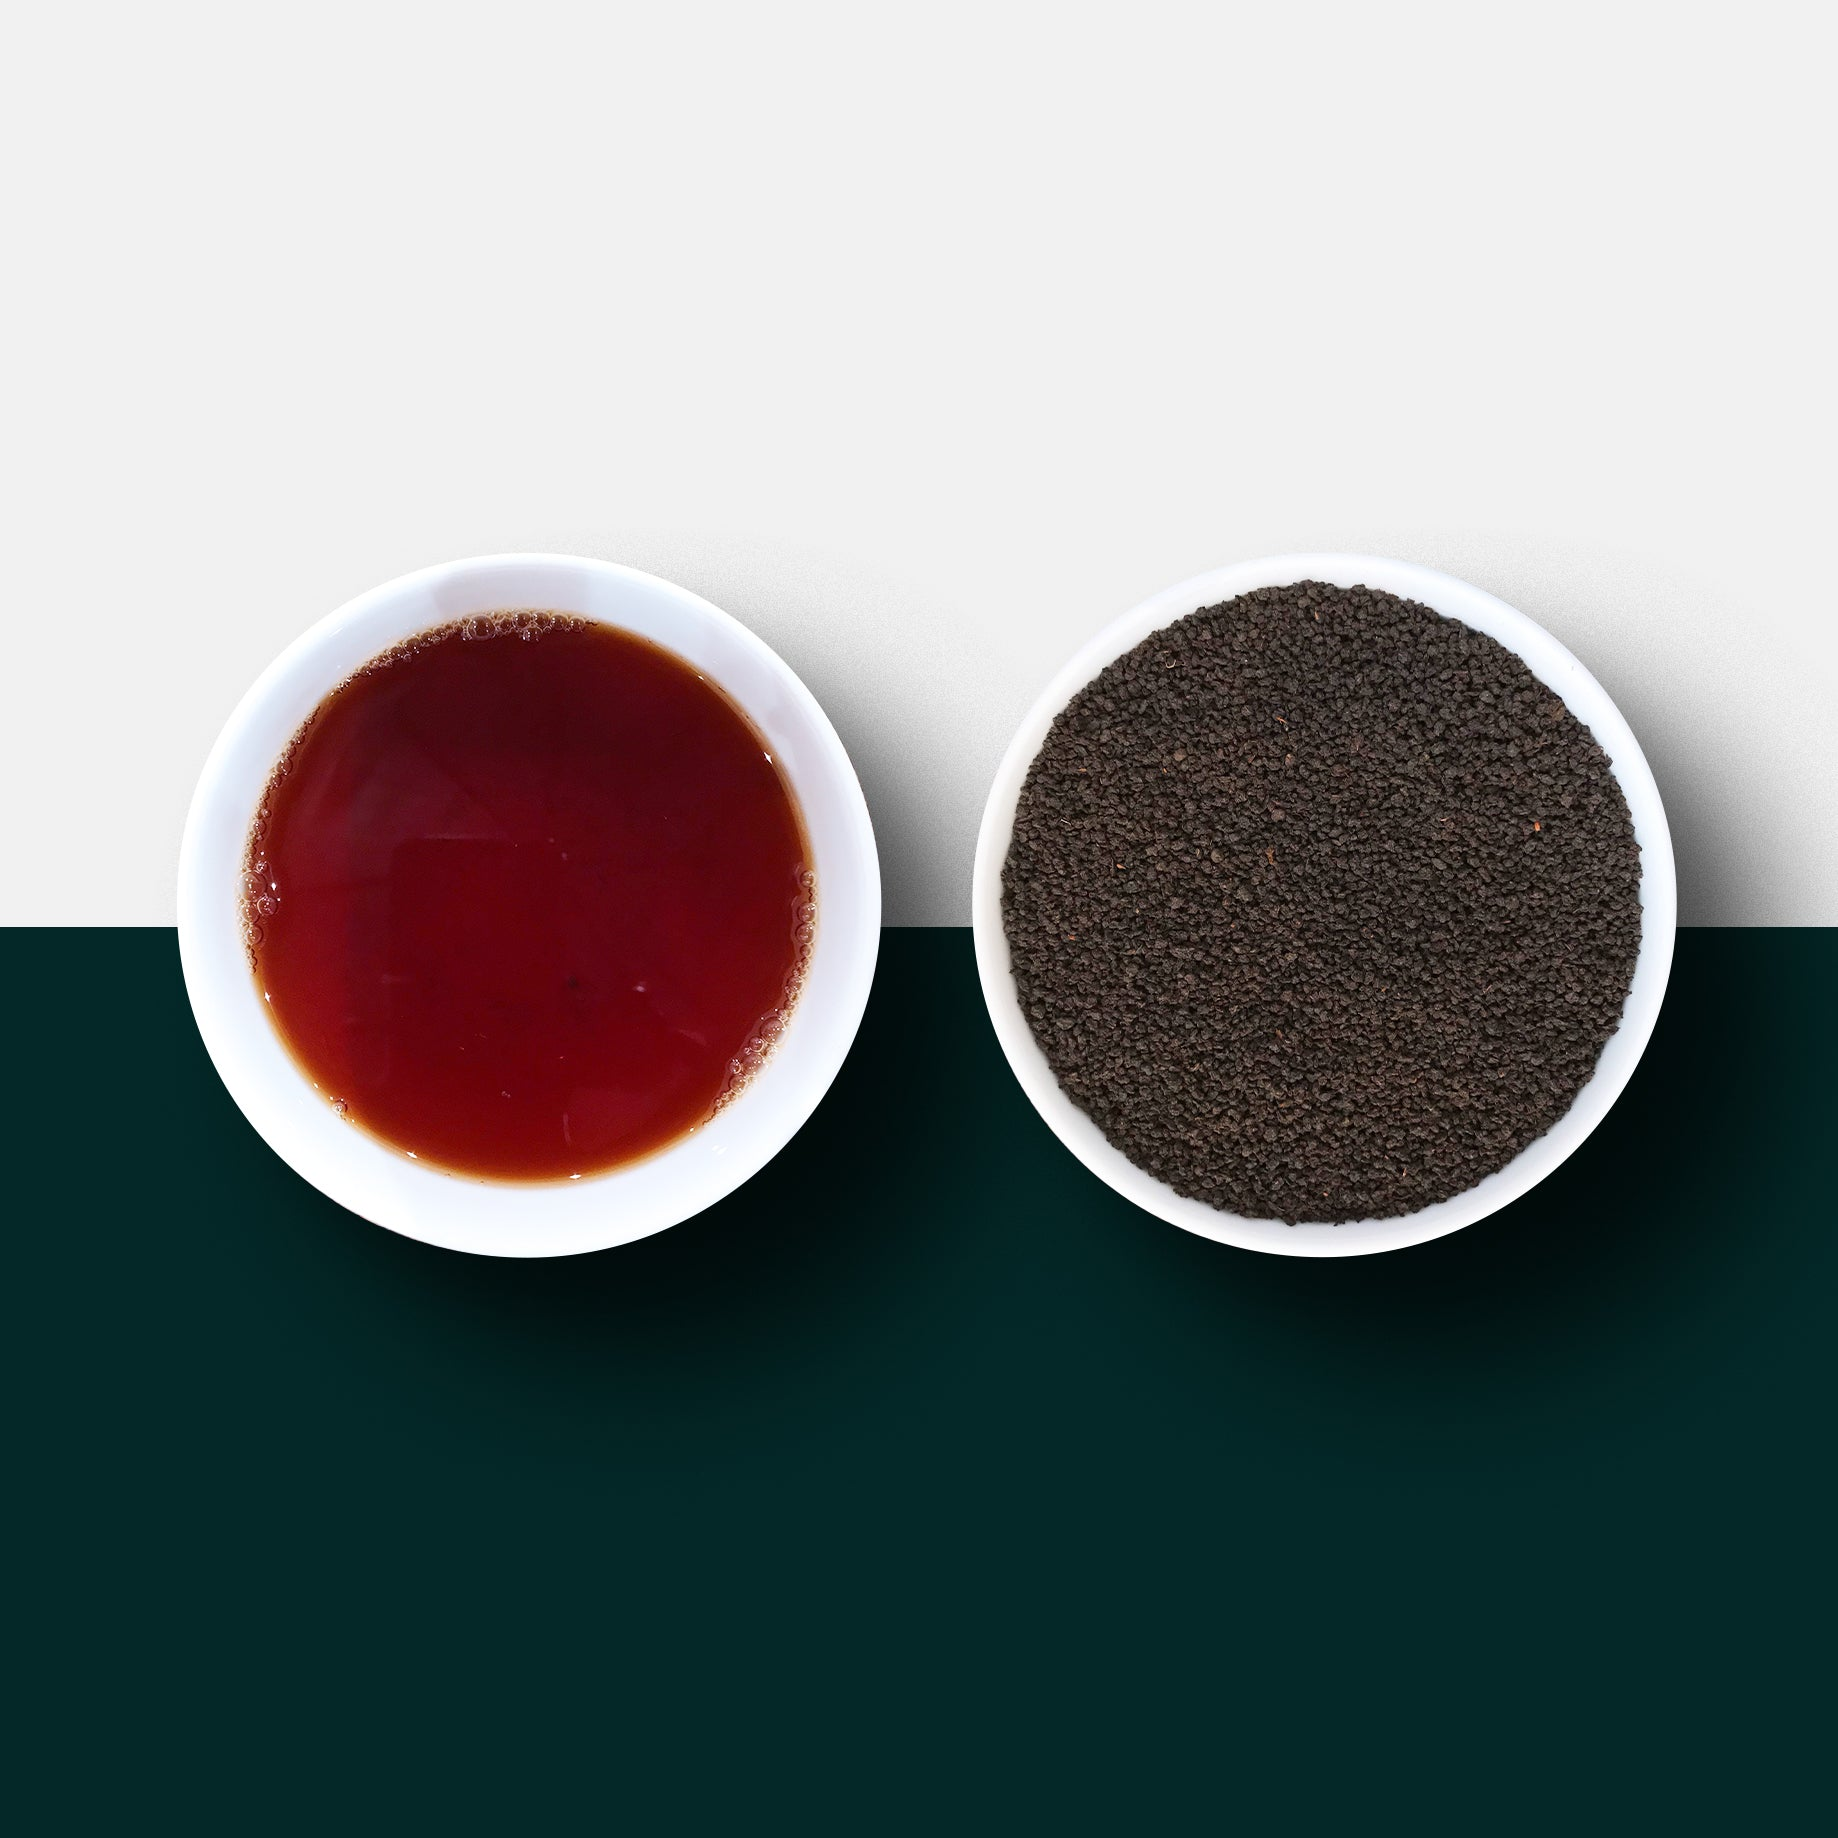 Kenyan Tea - Black Tea - Loose Leaf Tea and Liquor